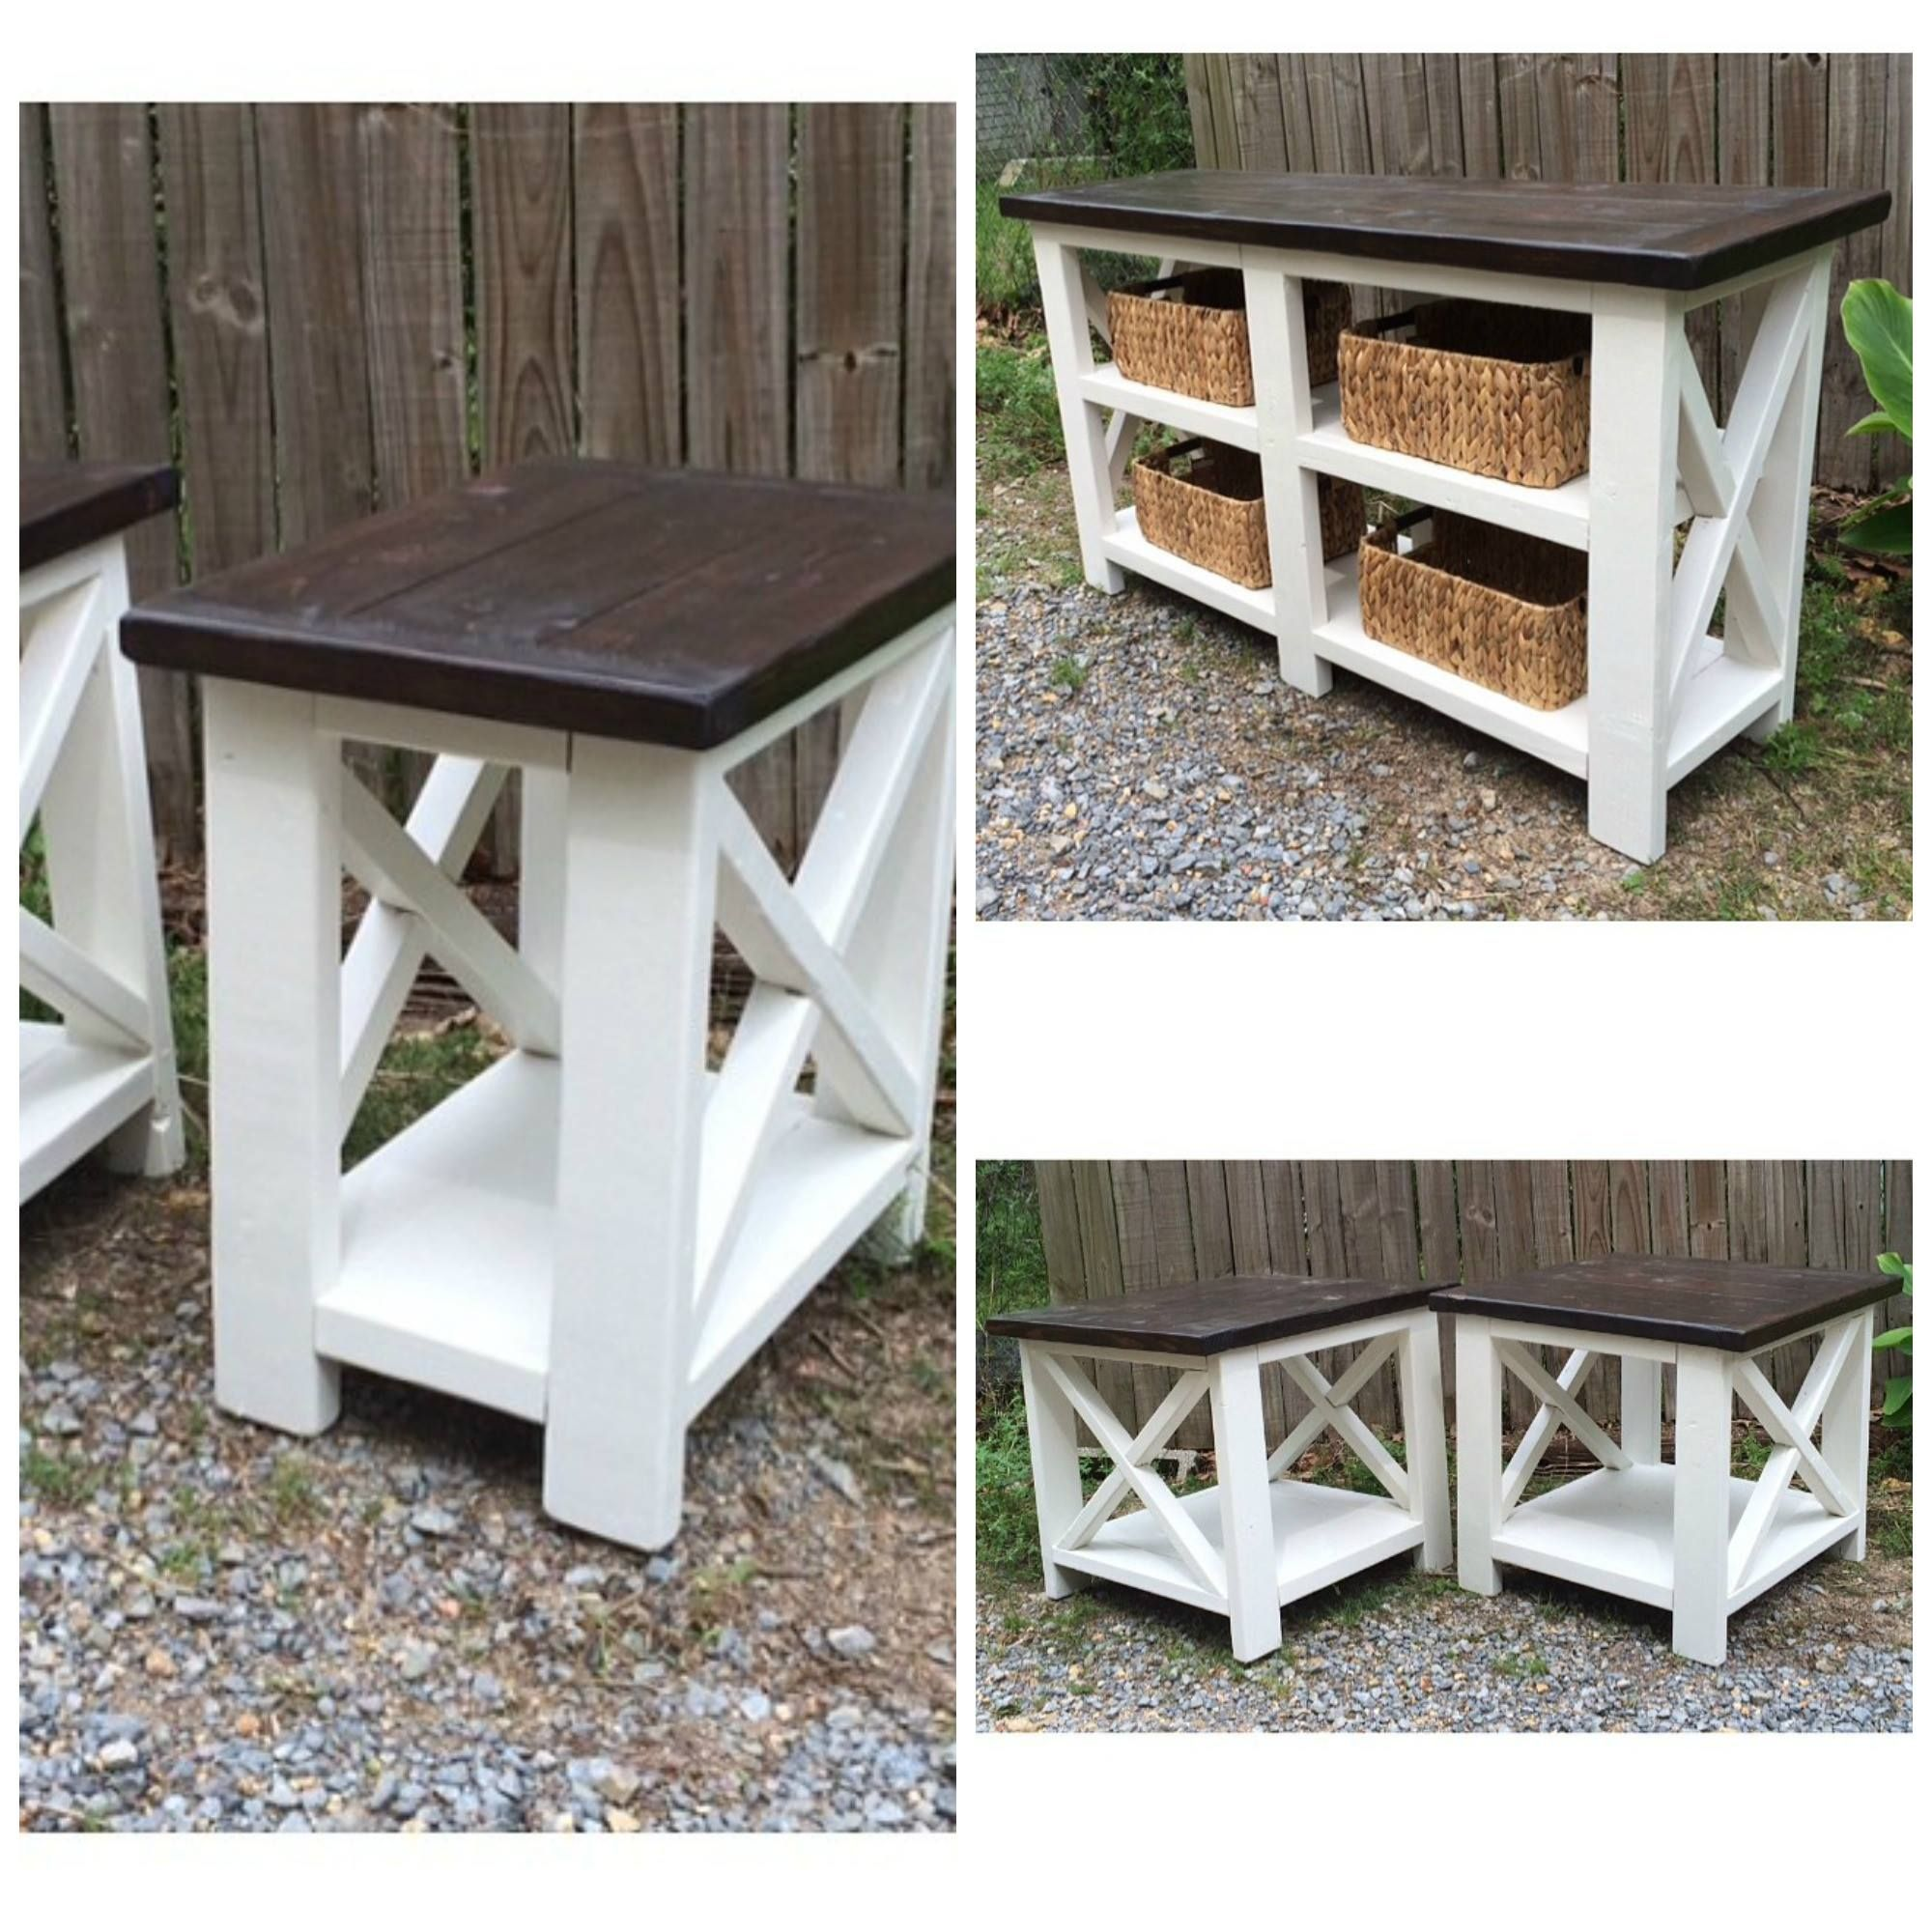 Ana White Let s Build Something Woodworking Pinterest